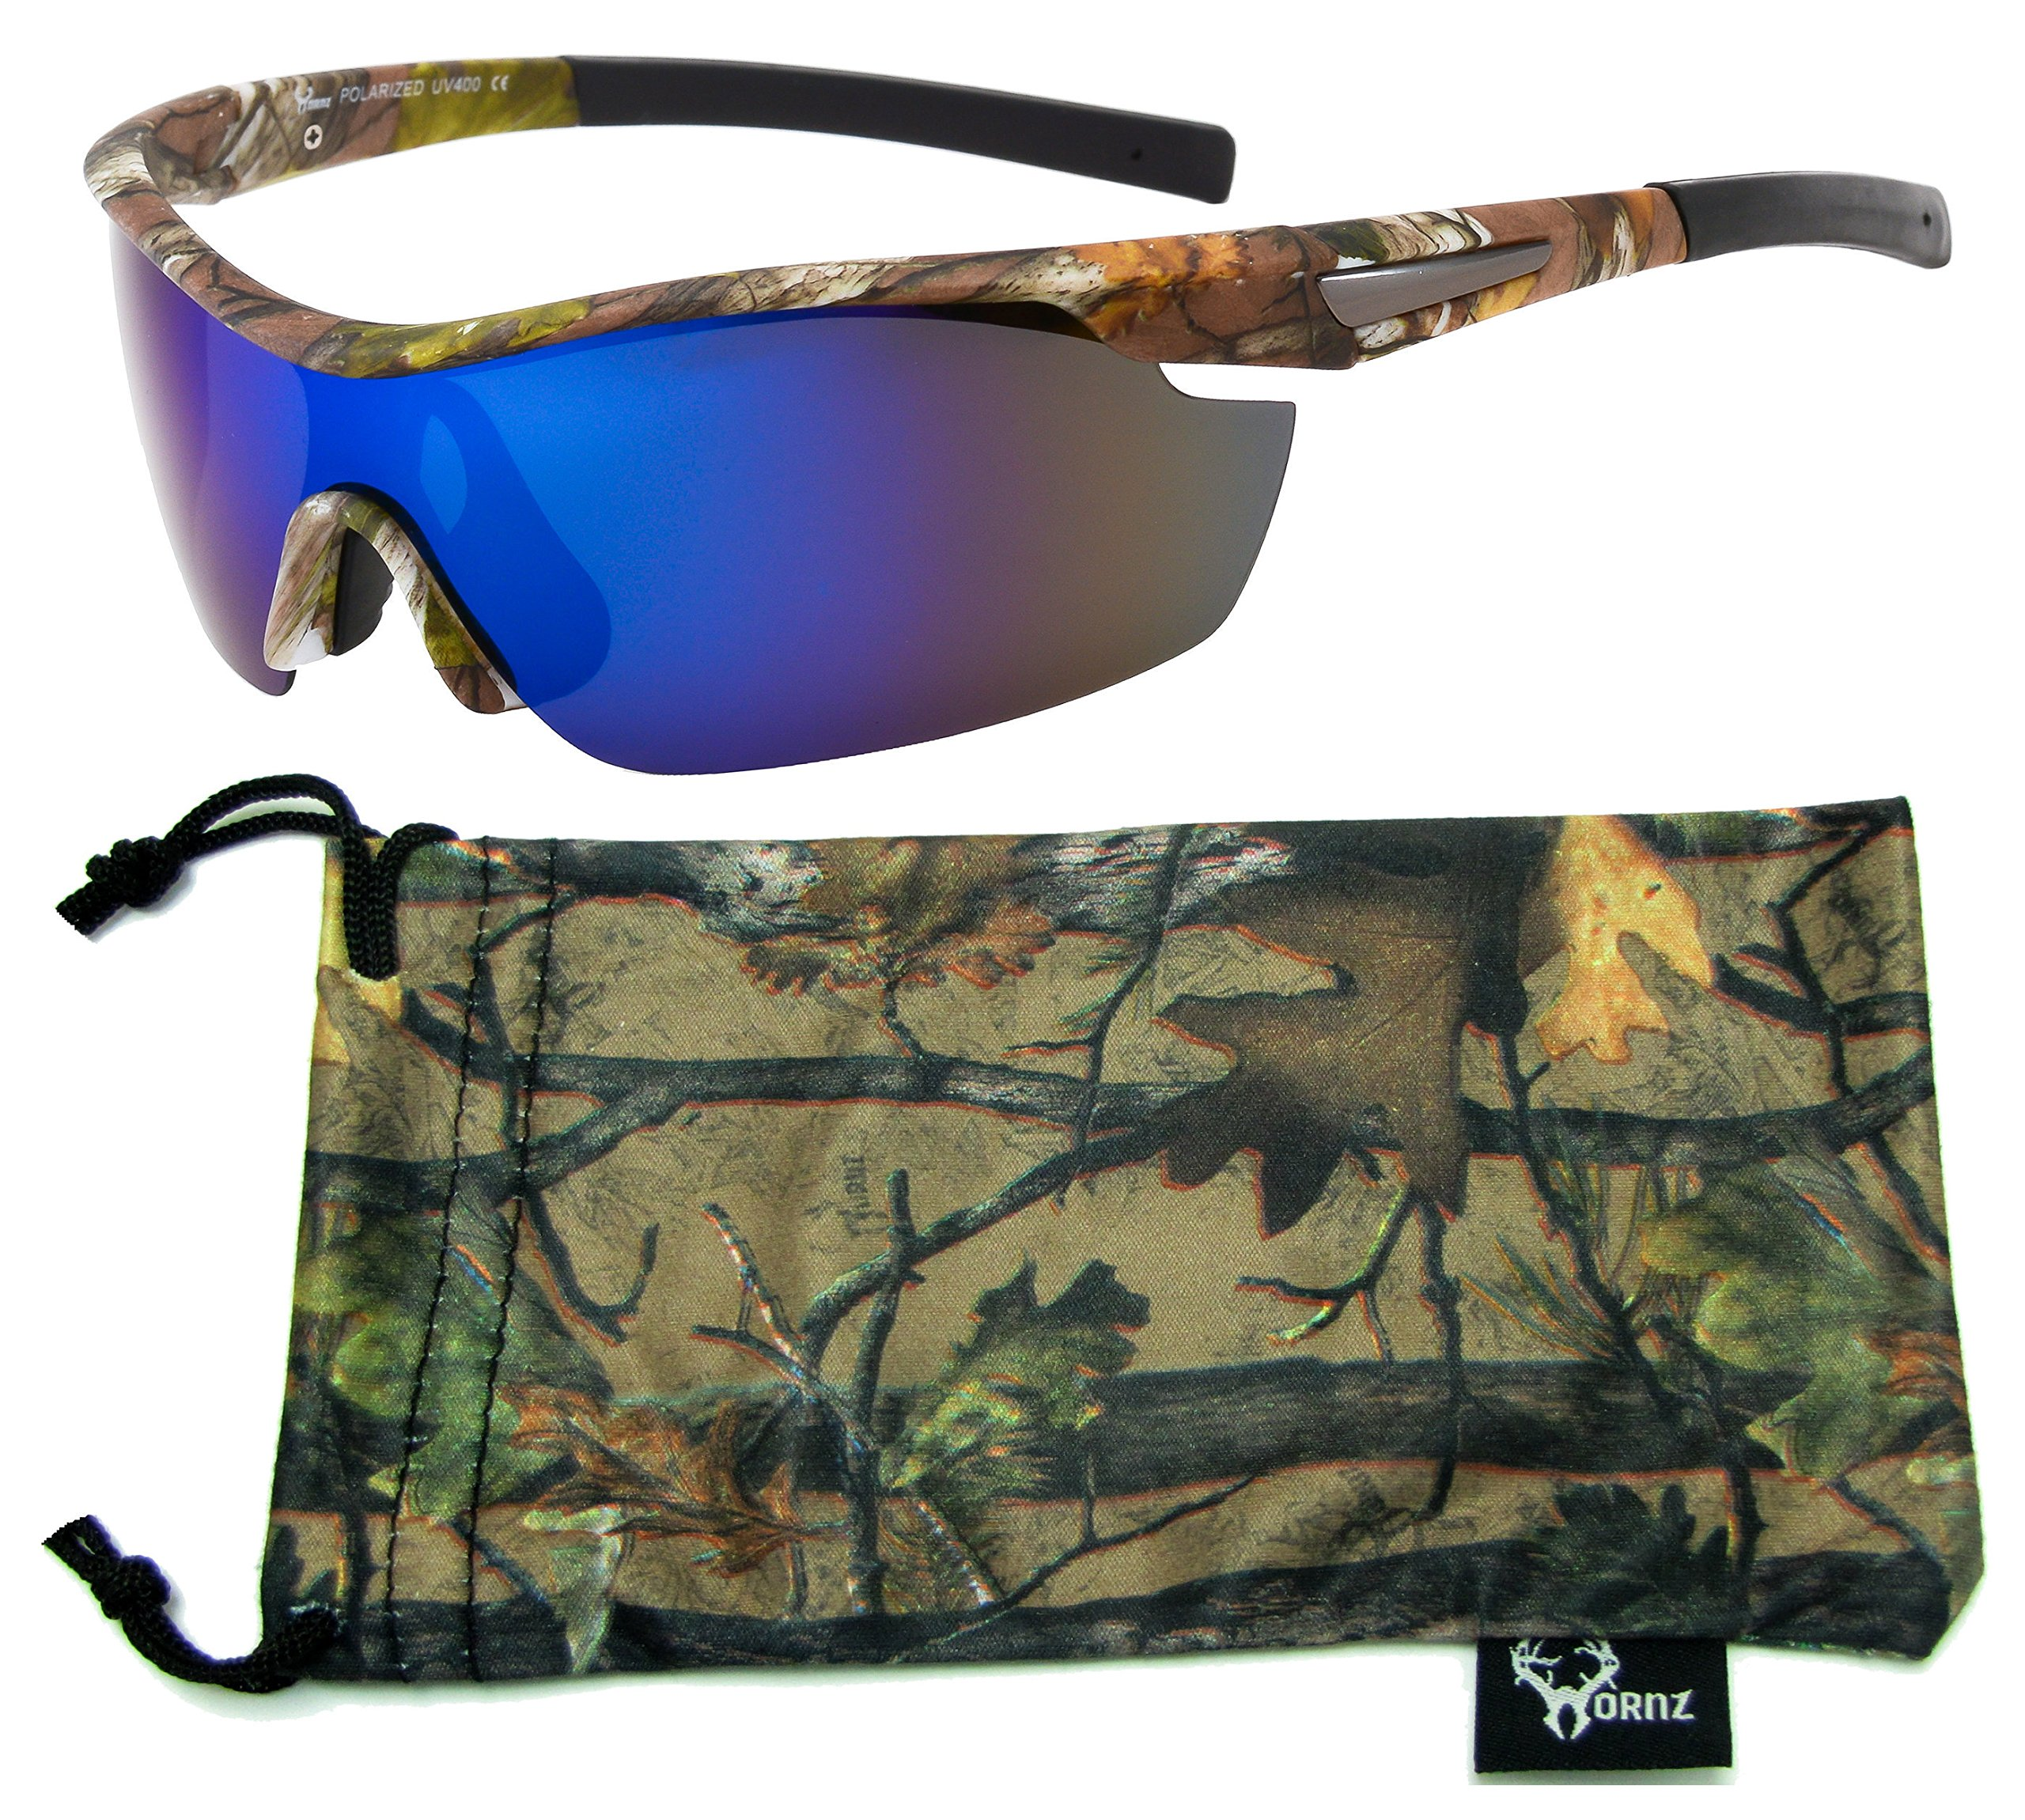 Hornz Brown Forrest Camouflage Polarized Sunglasses for Men Wrap Around Sport Frame & Free Matching Microfiber Pouch - Brown Camo Frame - Blue Lens